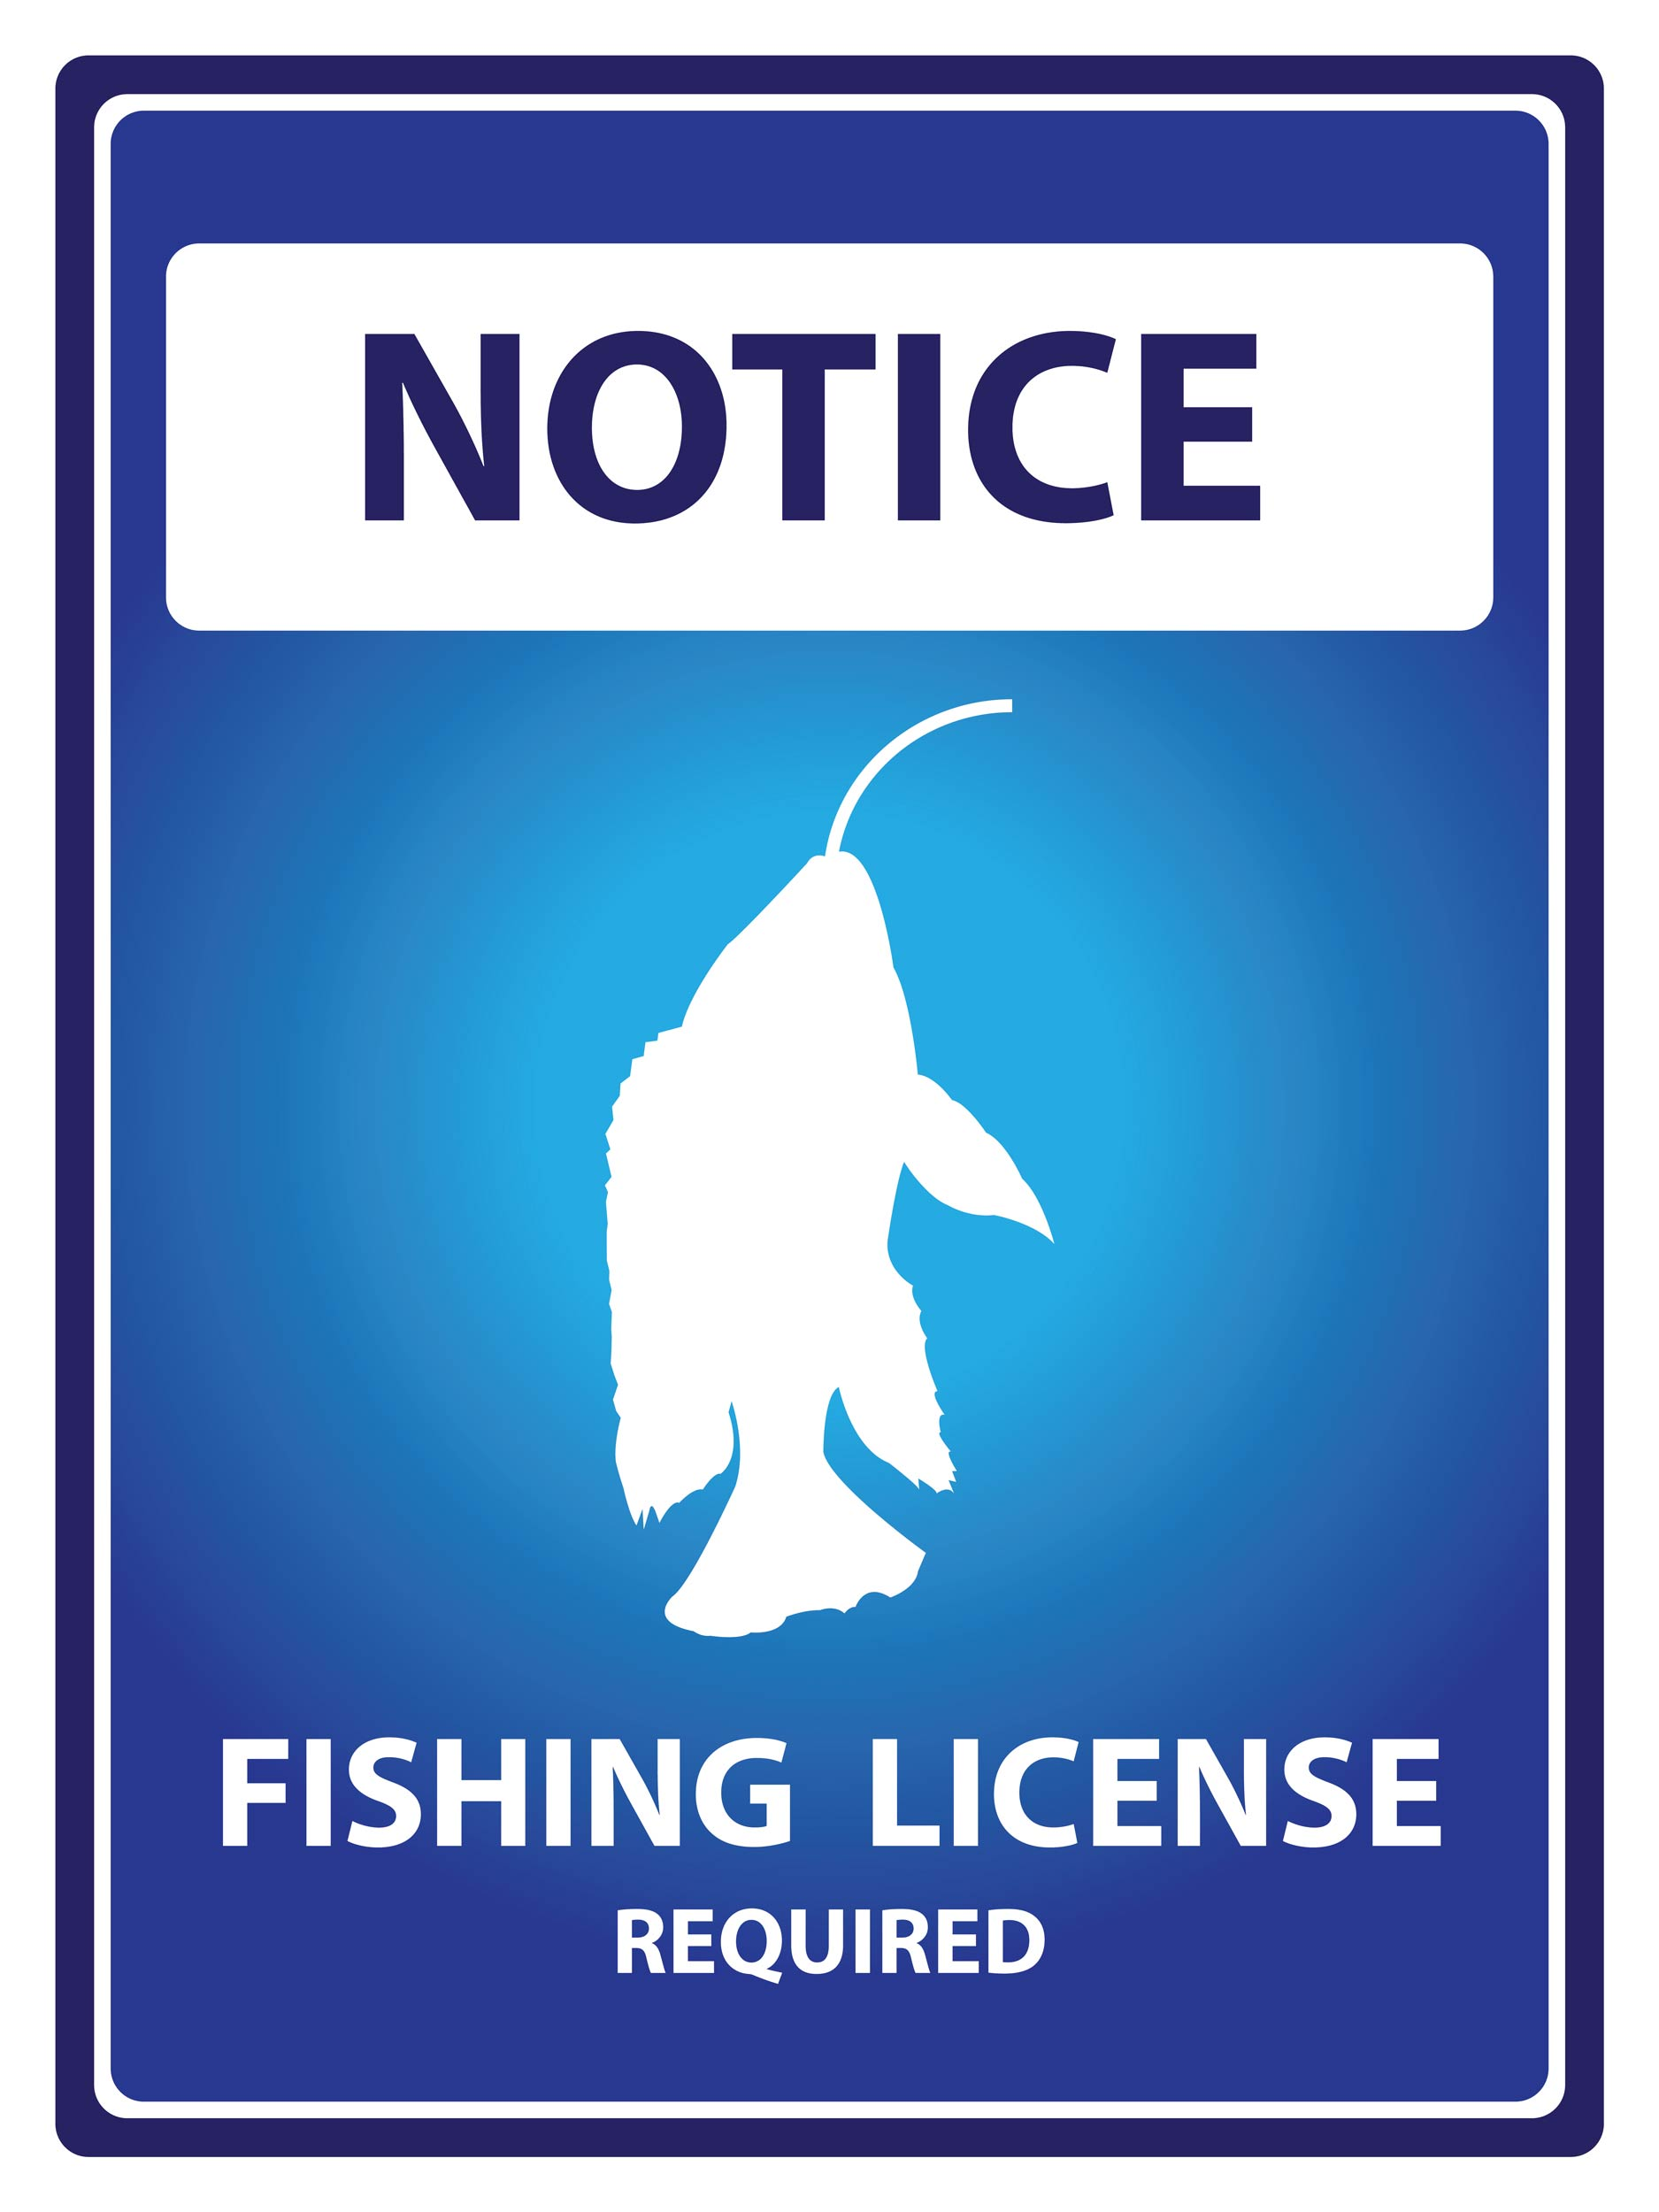 A picture with a notice that a fishing license is required